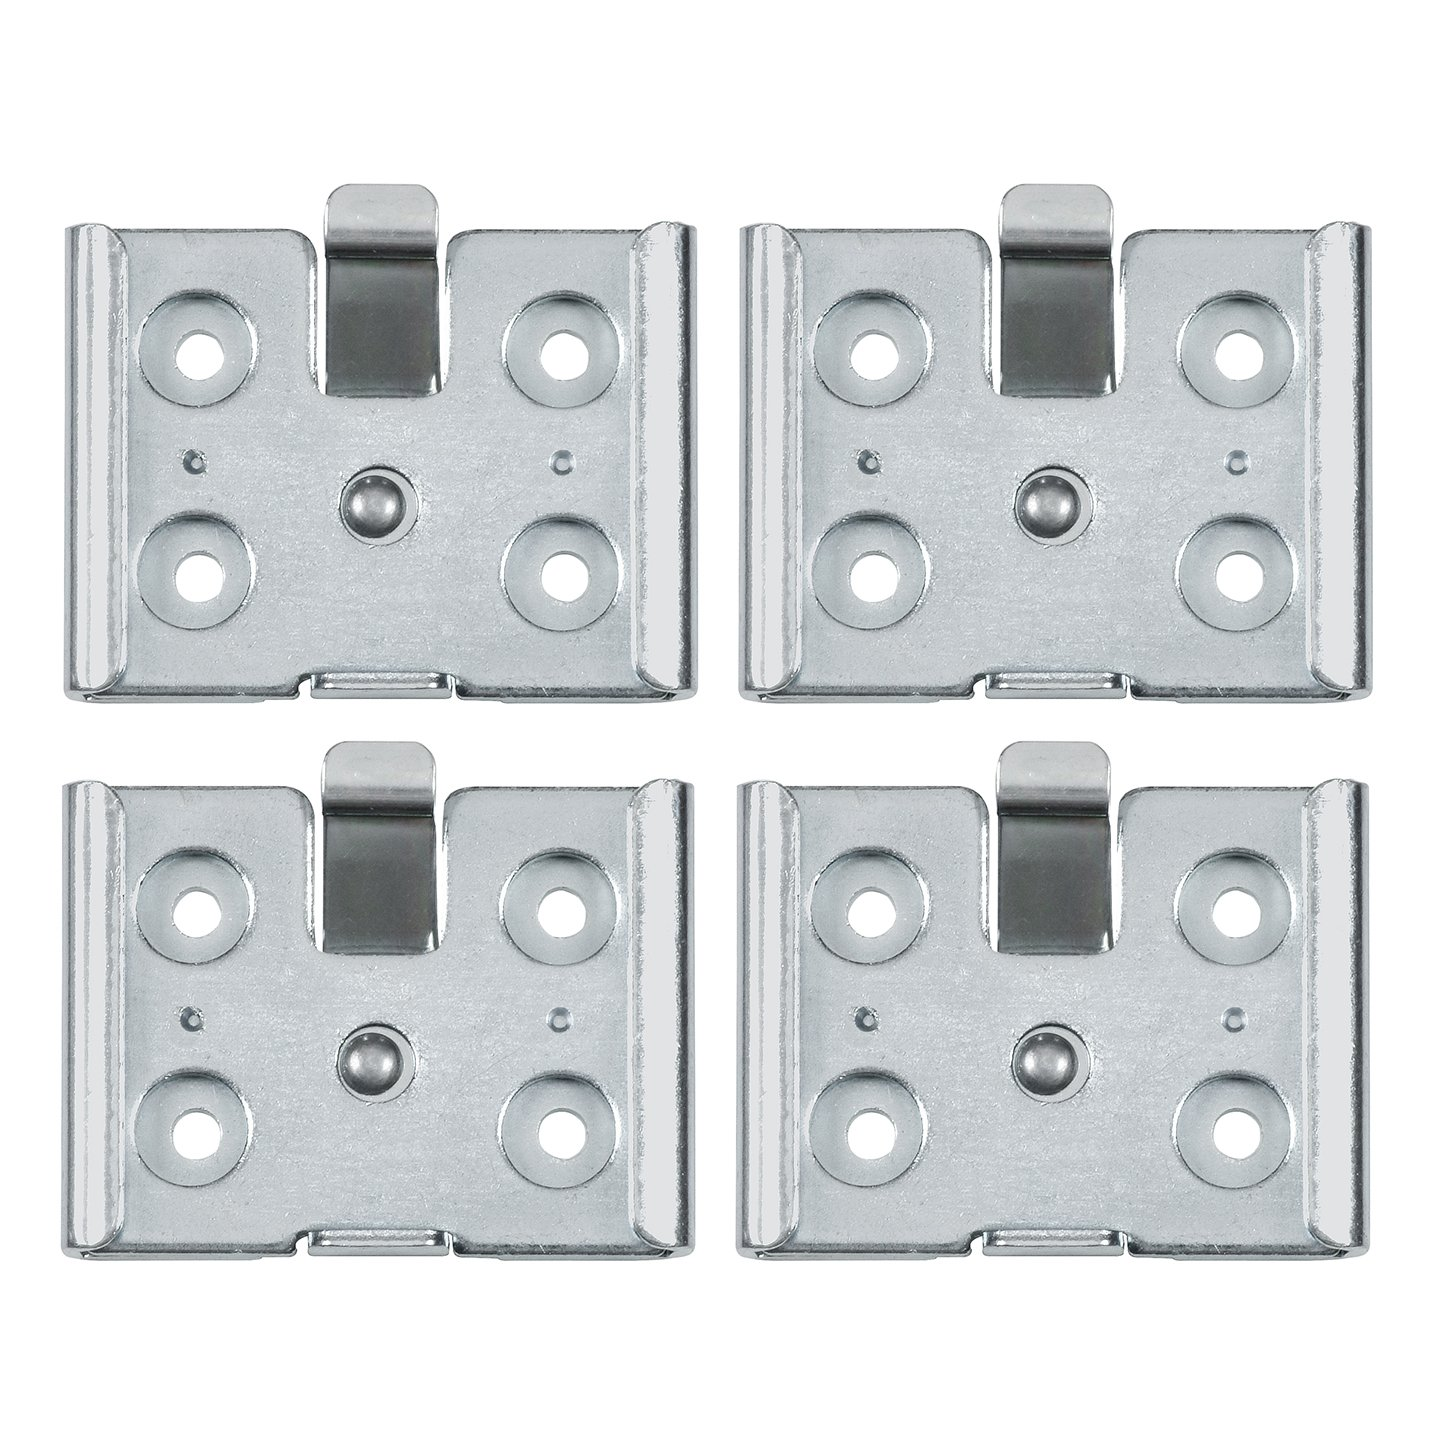 Reliable Hardware Company RH-9007-4-A Small Removable Caster Plate - Set of 4